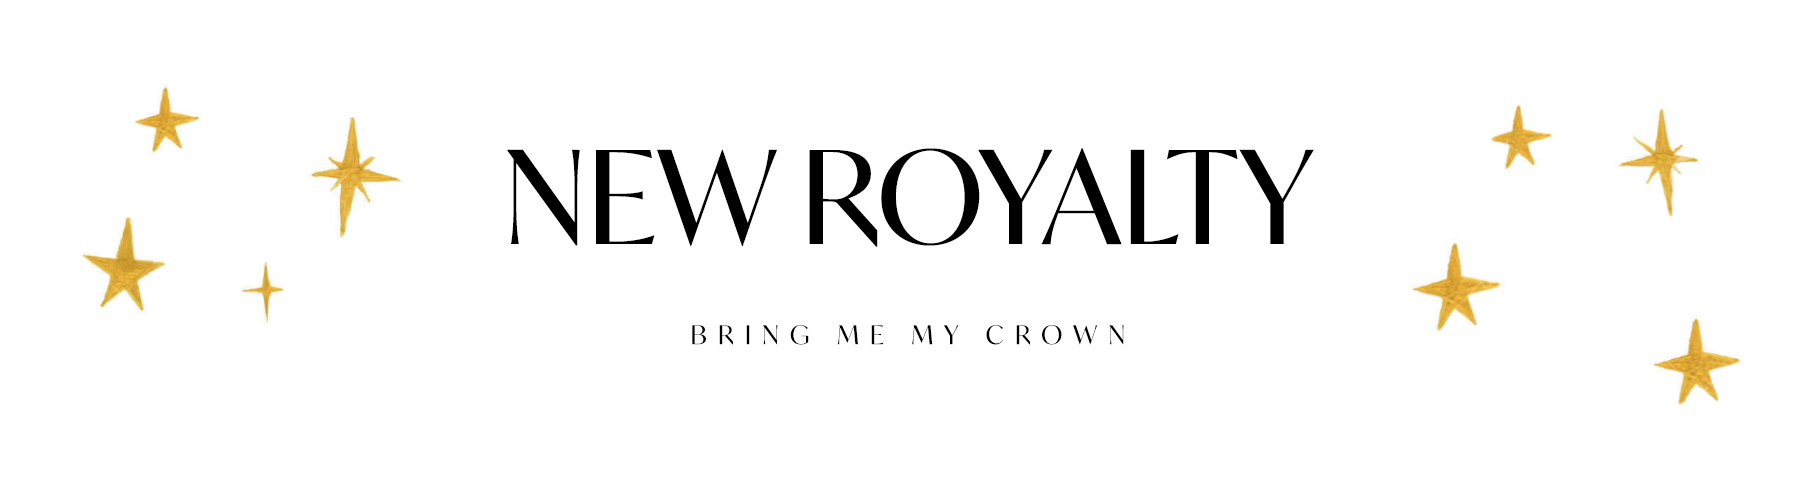 New-Royalty-1.png